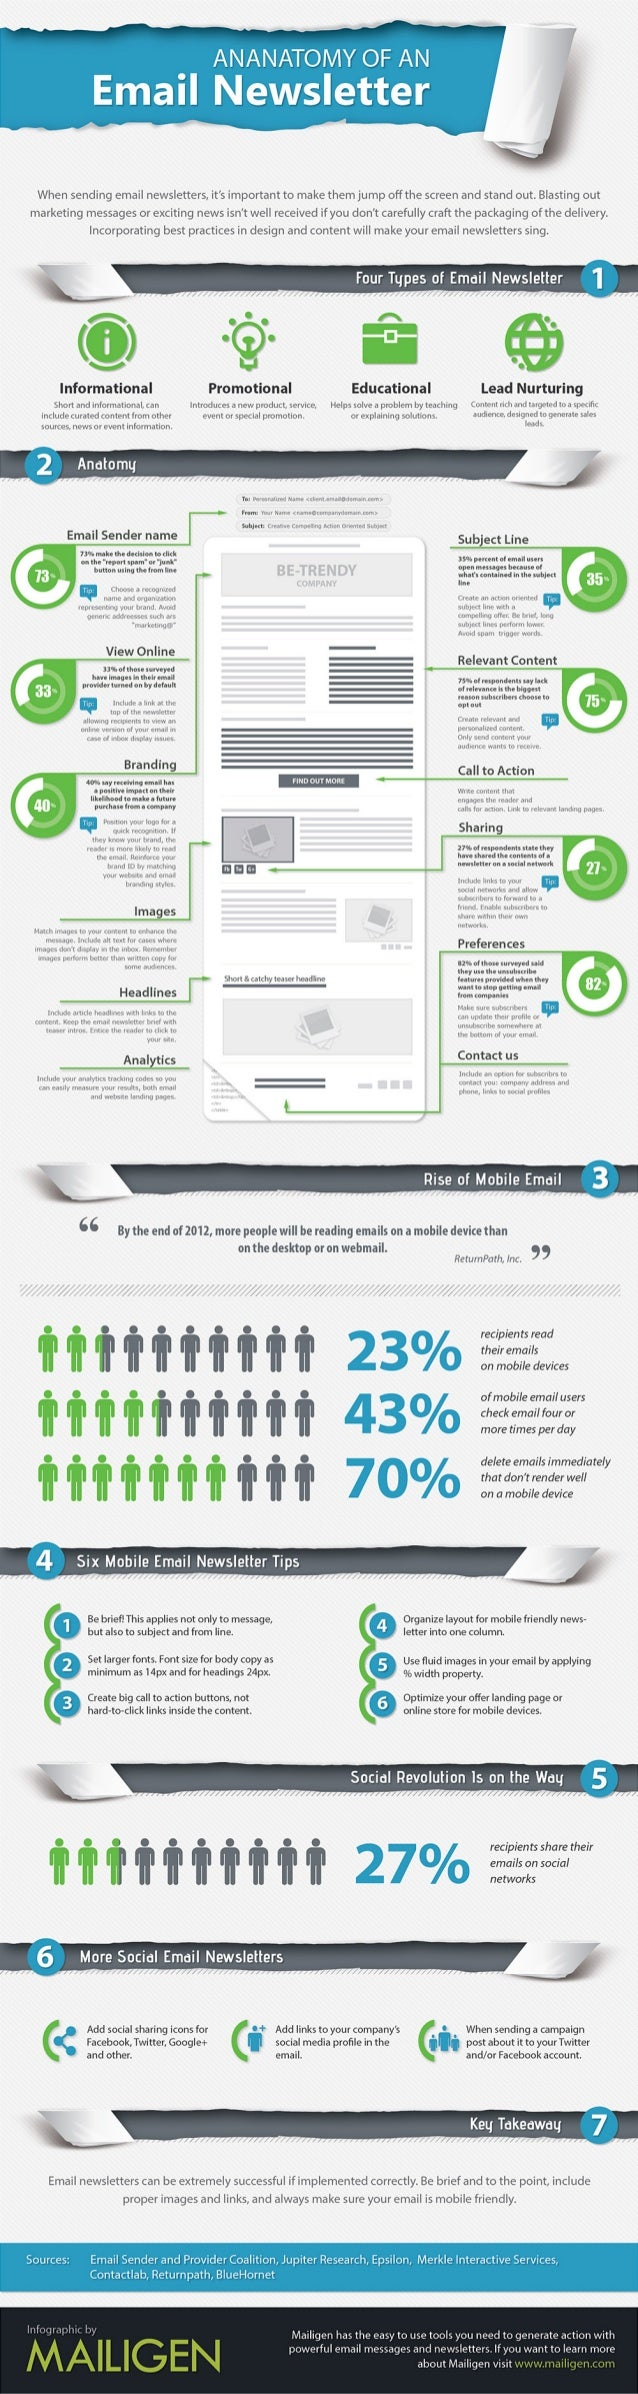 Anatomy o an email newsletter by mailigen - INFOGRAPHIC